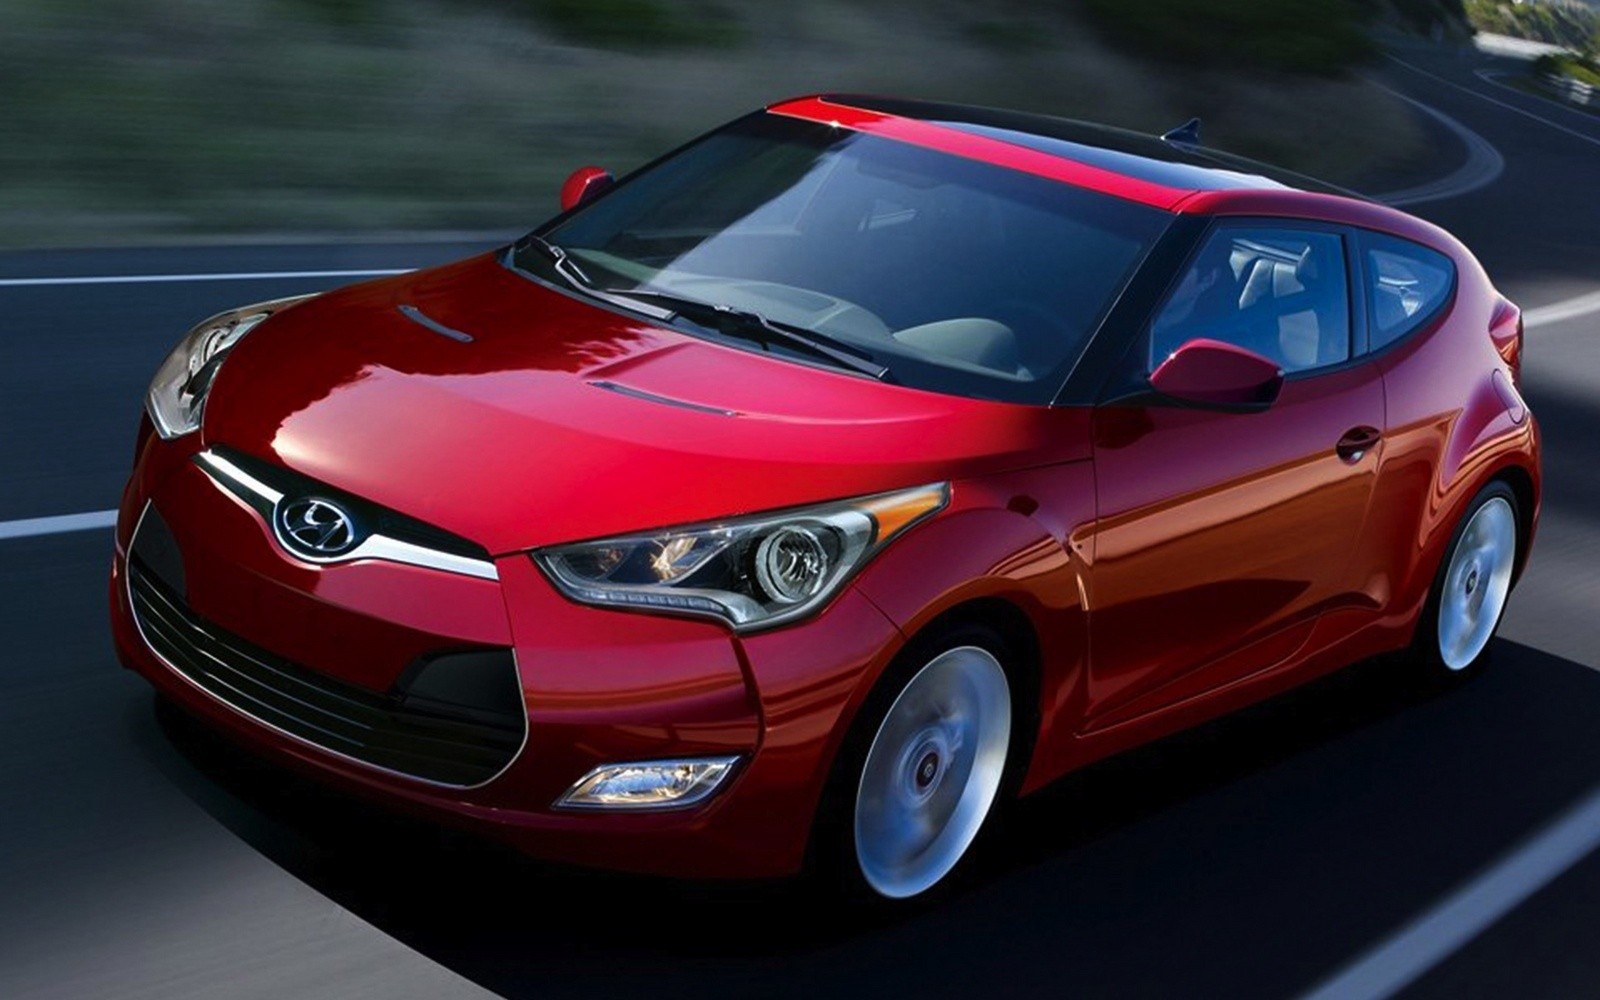 New 2015 2016 Hyundai Veloster For Sale Cargurus